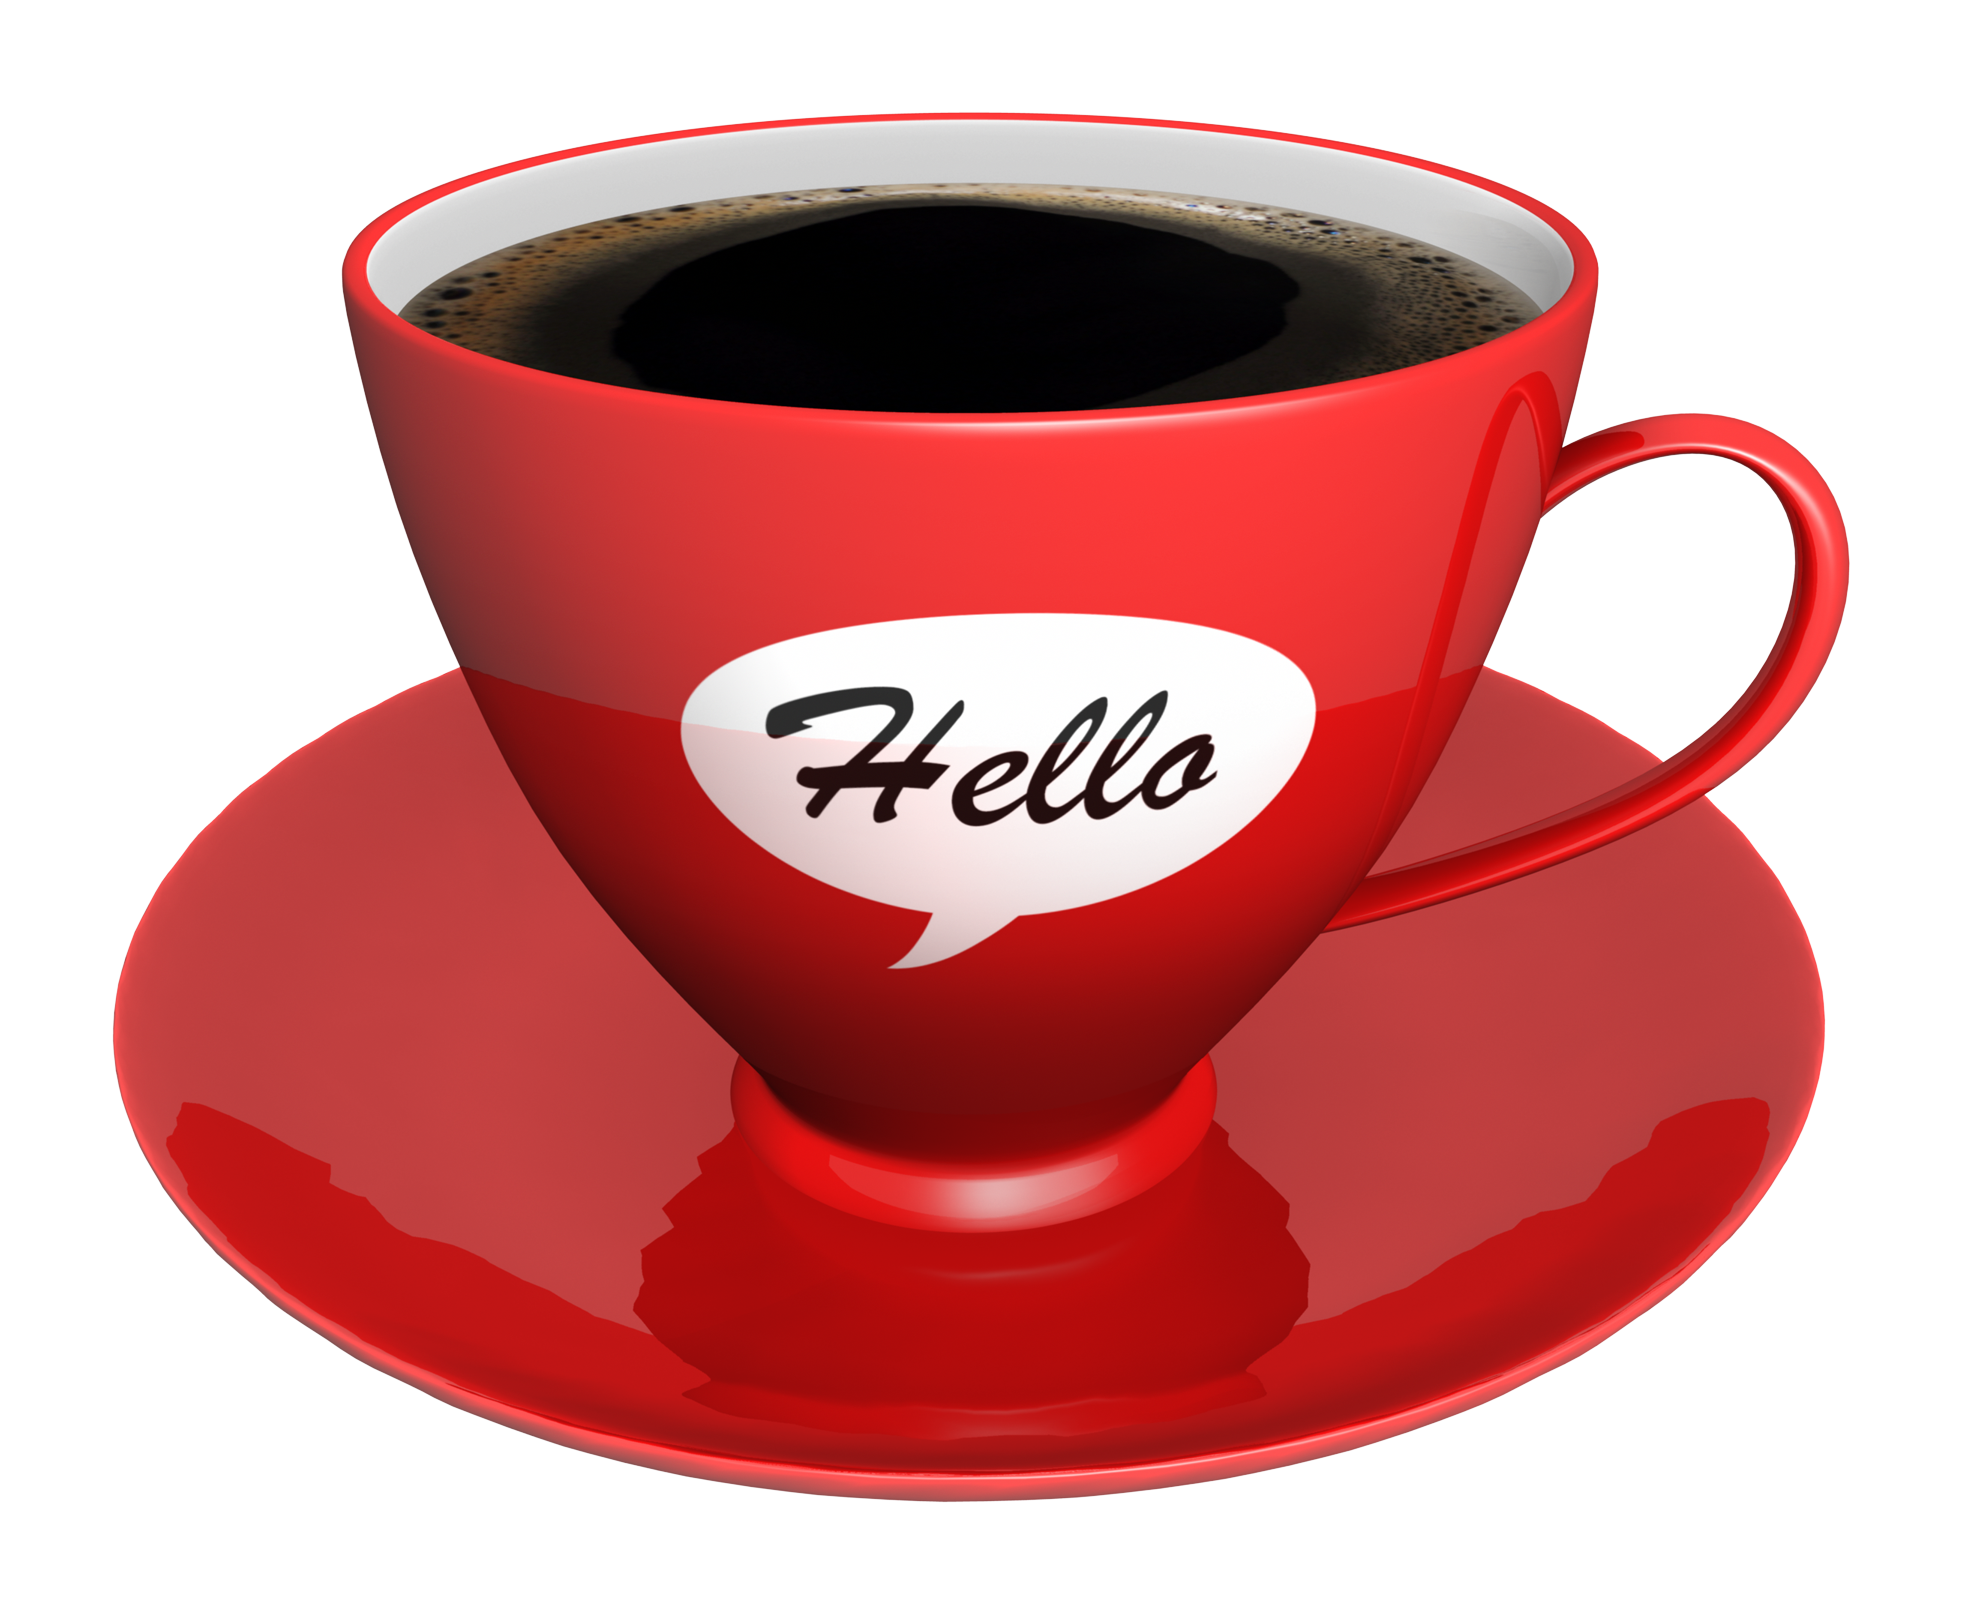 Coffee Cup PNG Image - PurePNG | Free transparent CC0 PNG ...